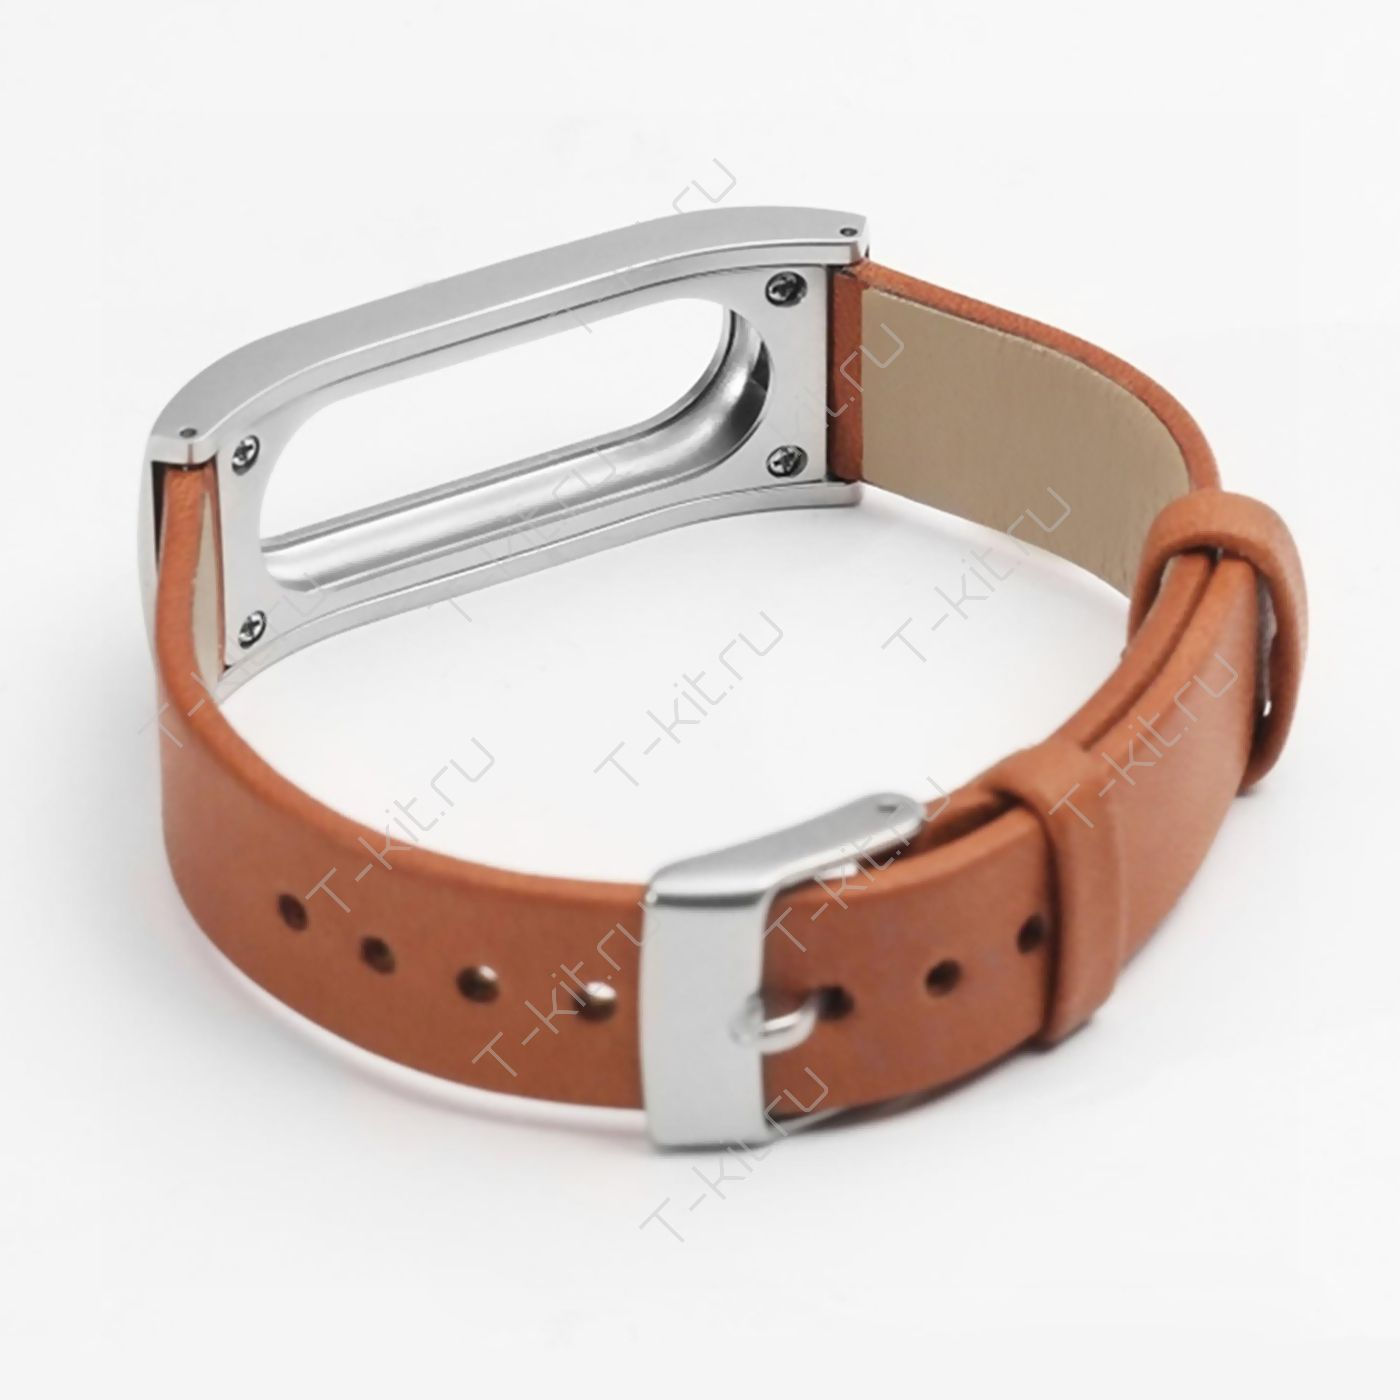 2015-100-New-Original-Xiaomi-Mi-Band-Leather-Wristband-Bracelet-Leather-Belt-Wrist-Strap-Wristba.jpg